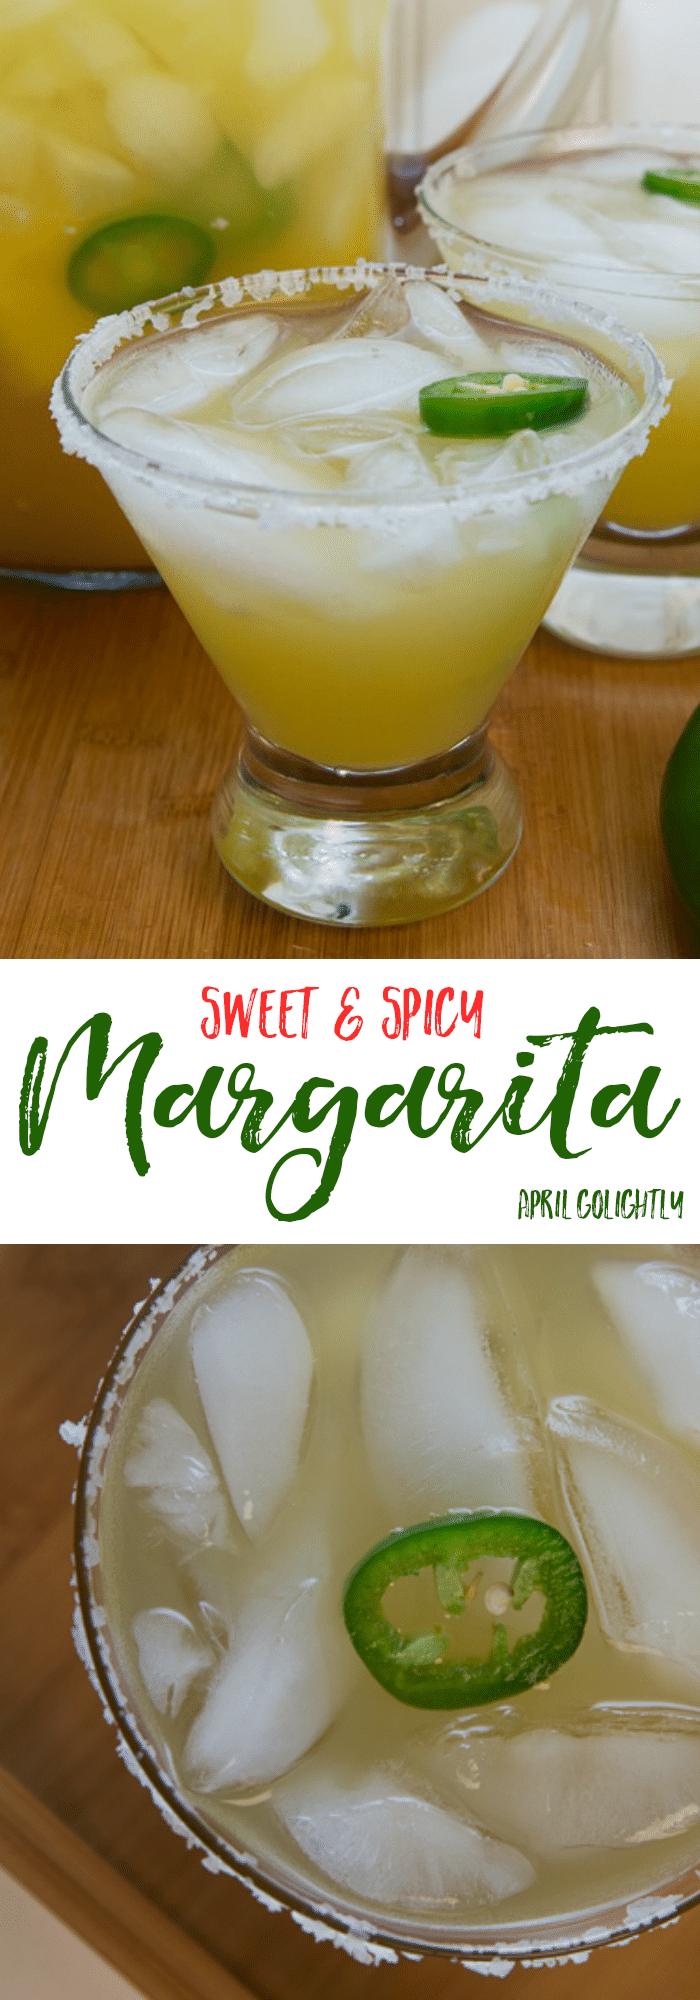 Sweet and Spicy Margarita Recipe that is skinny and made on the rocks or frozen in a pitcher to be served at a party